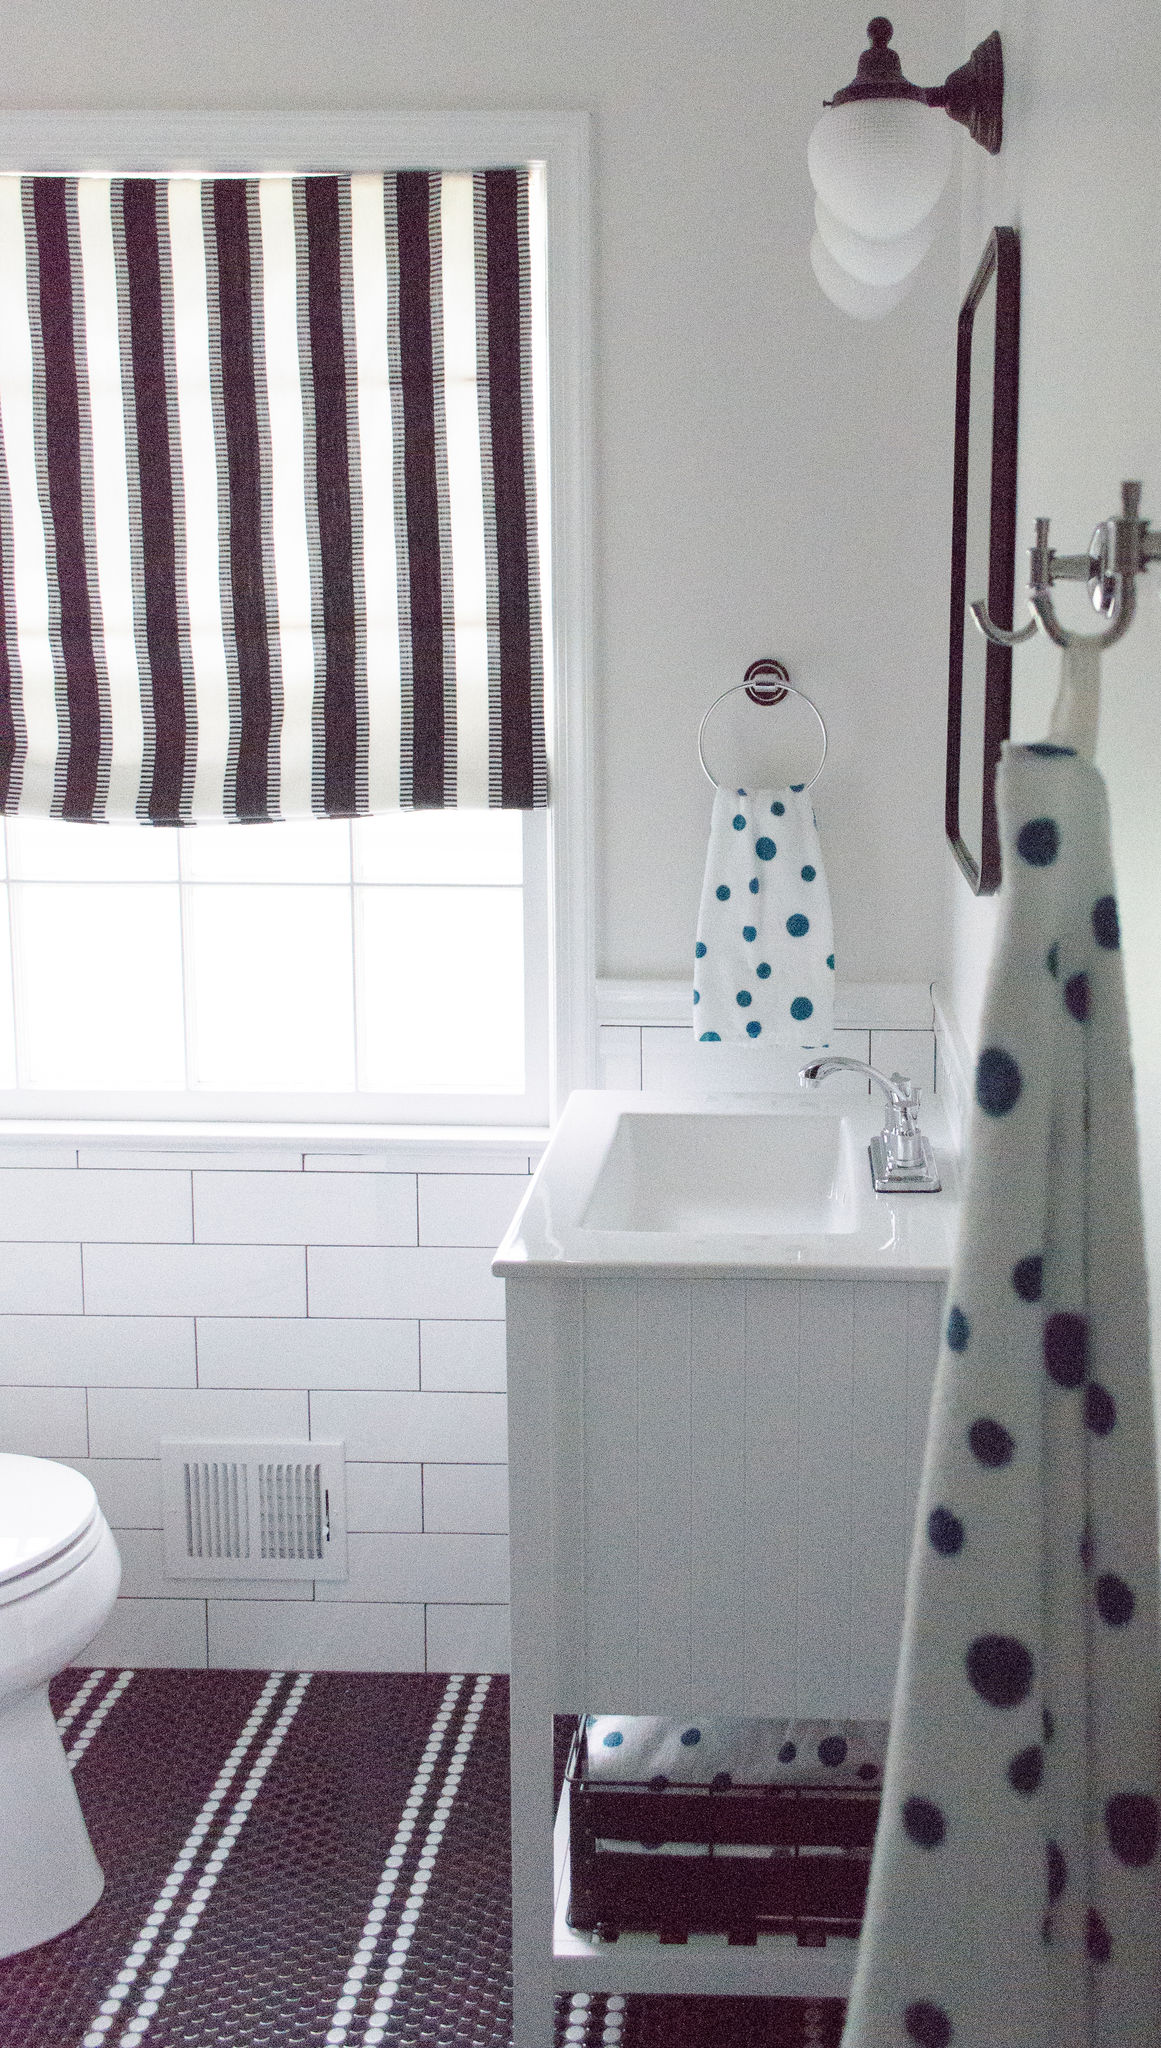 Bathroom Reveal: Black and White but not Basic